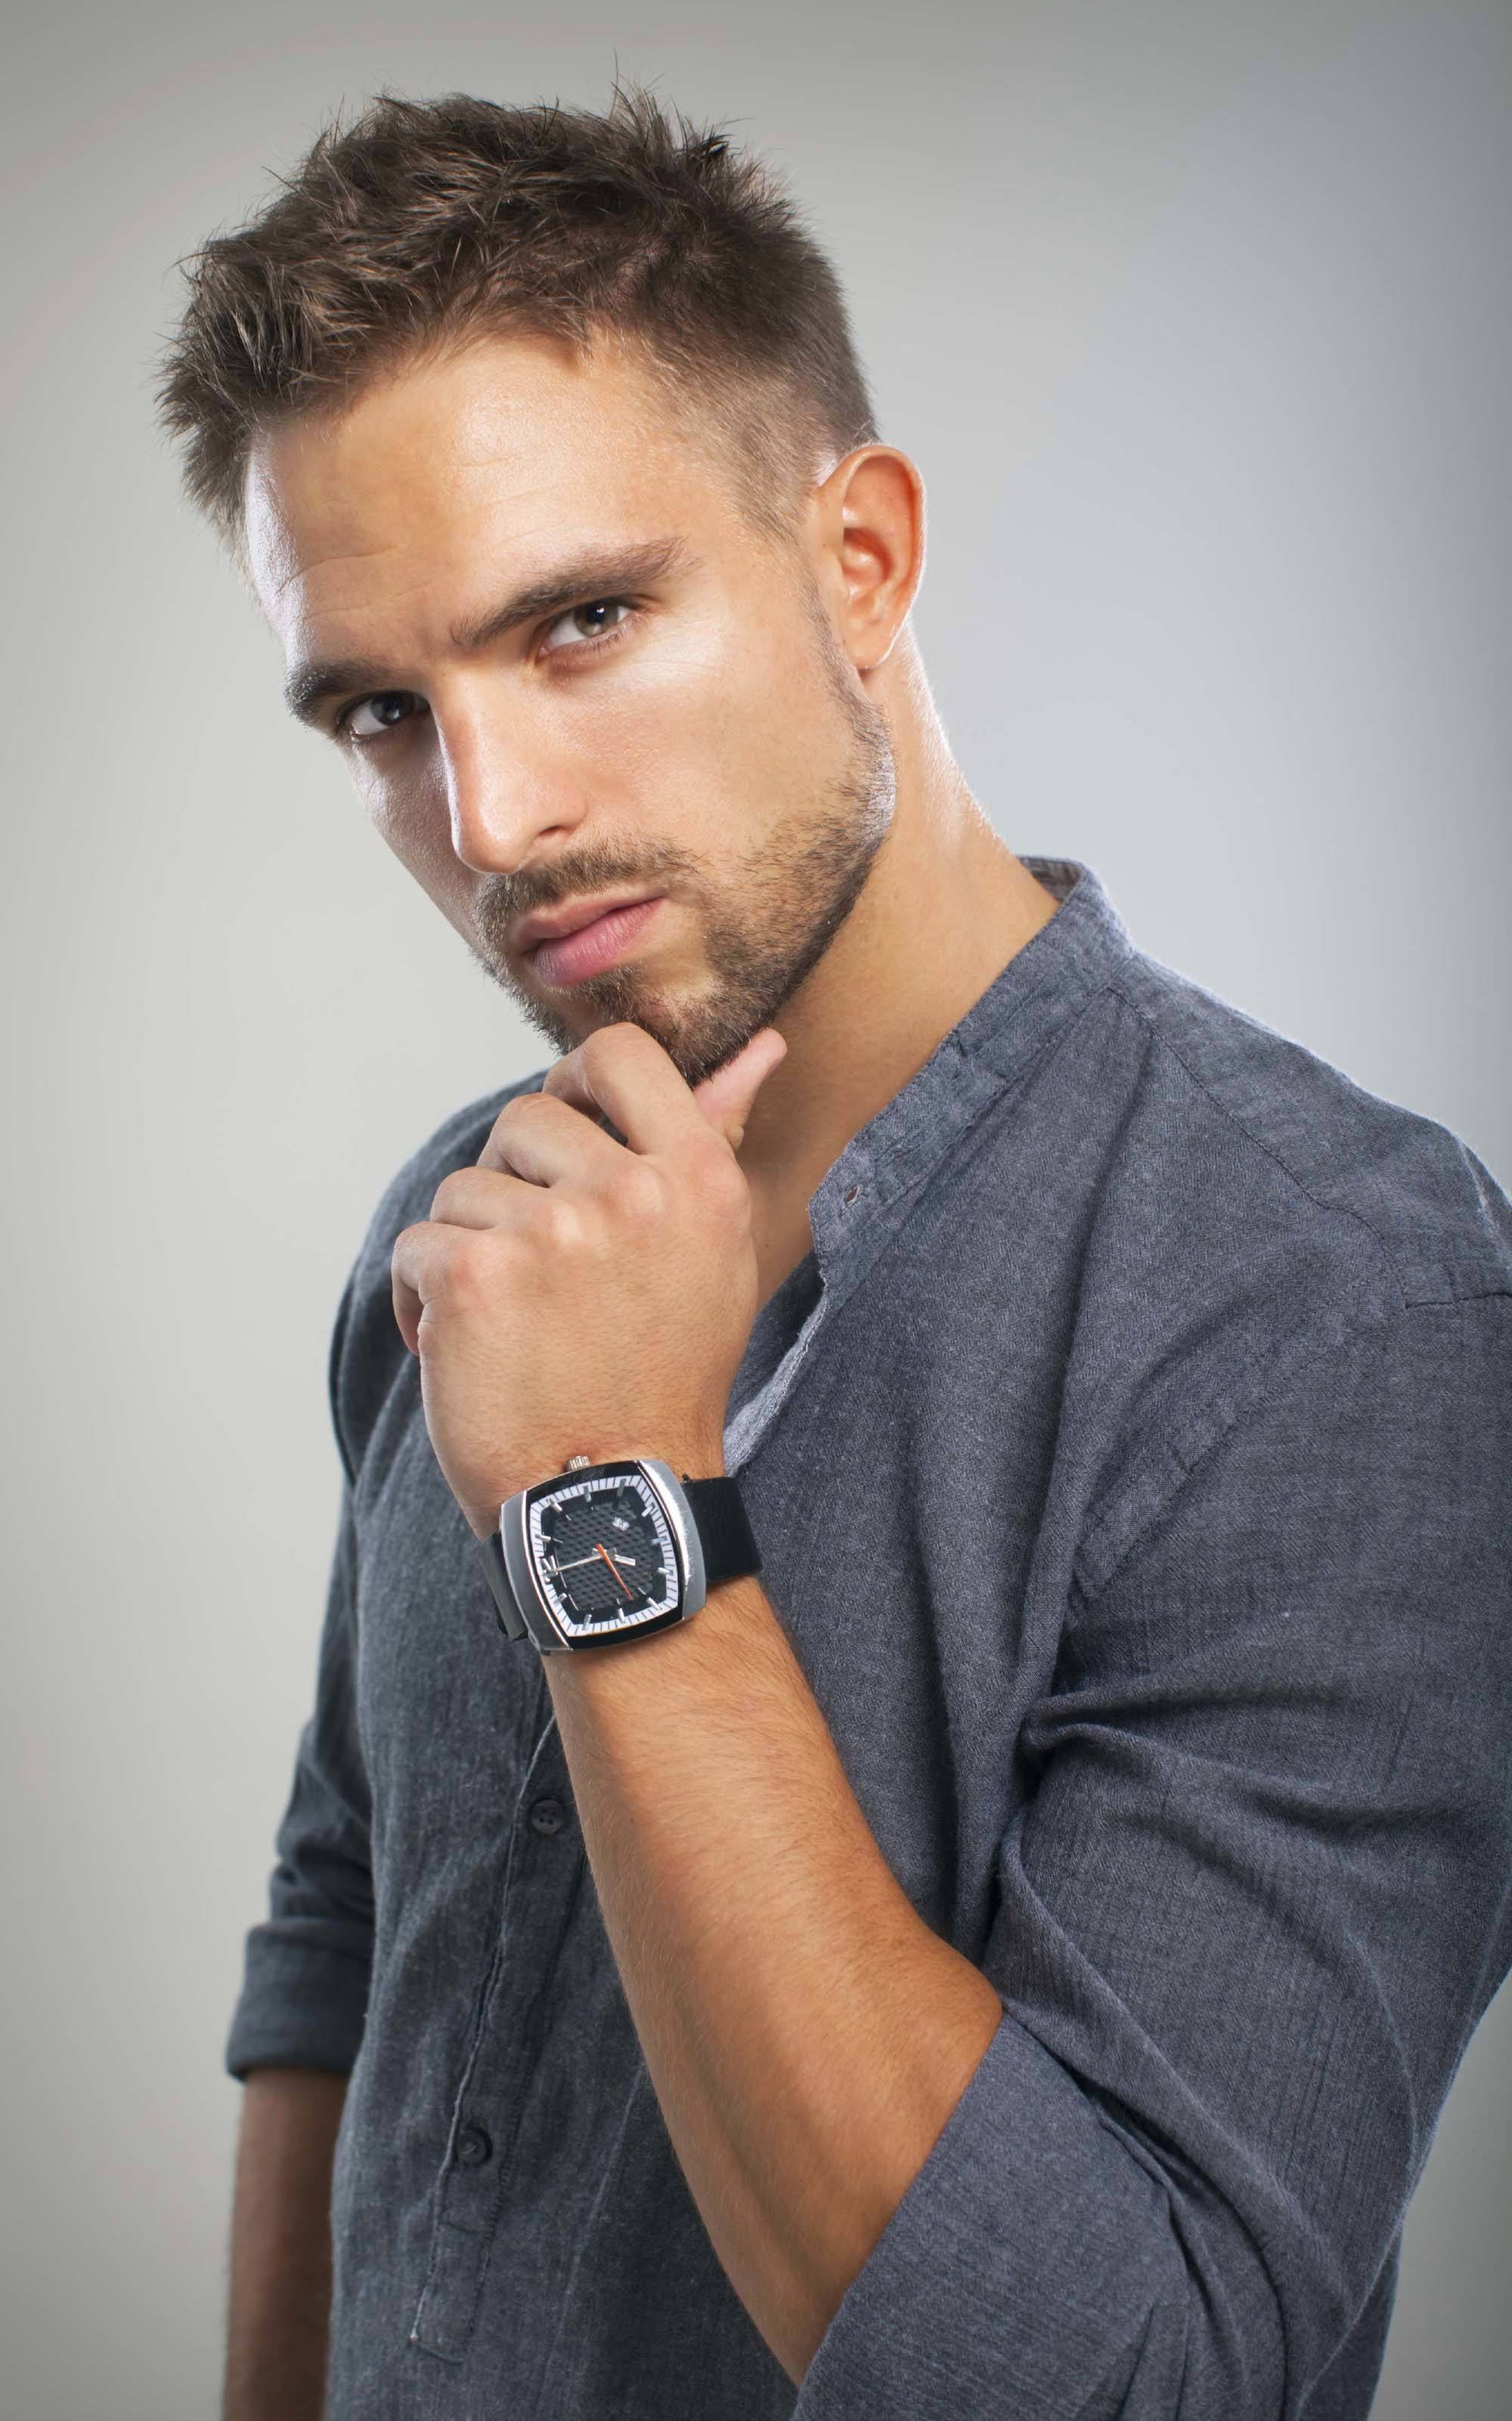 best haircuts for men on the go: fade haircut